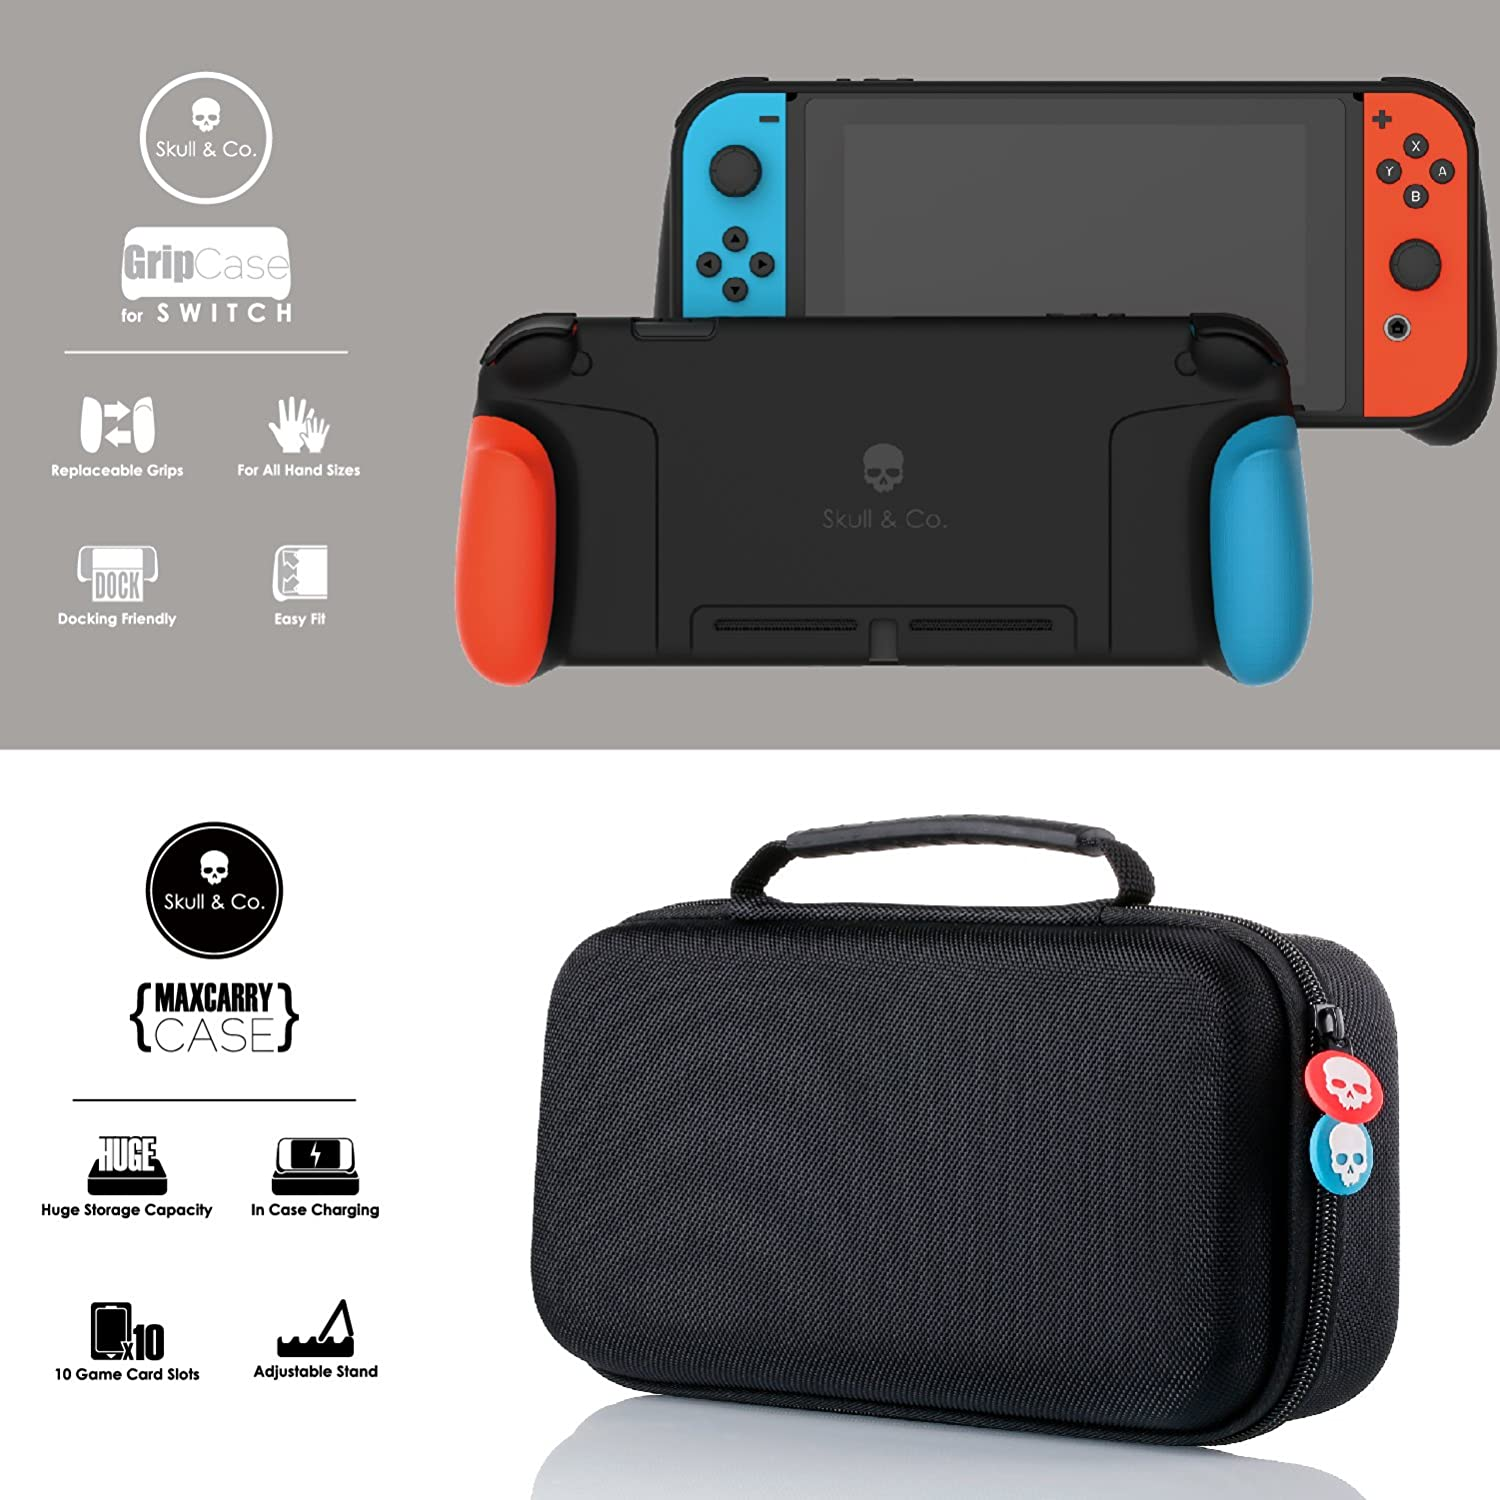 Skull & Co. GripCase Set: A Dockable Protective Case with Replaceable Grips [to fit All Hands Sizes] for Nintendo Switch - Gray